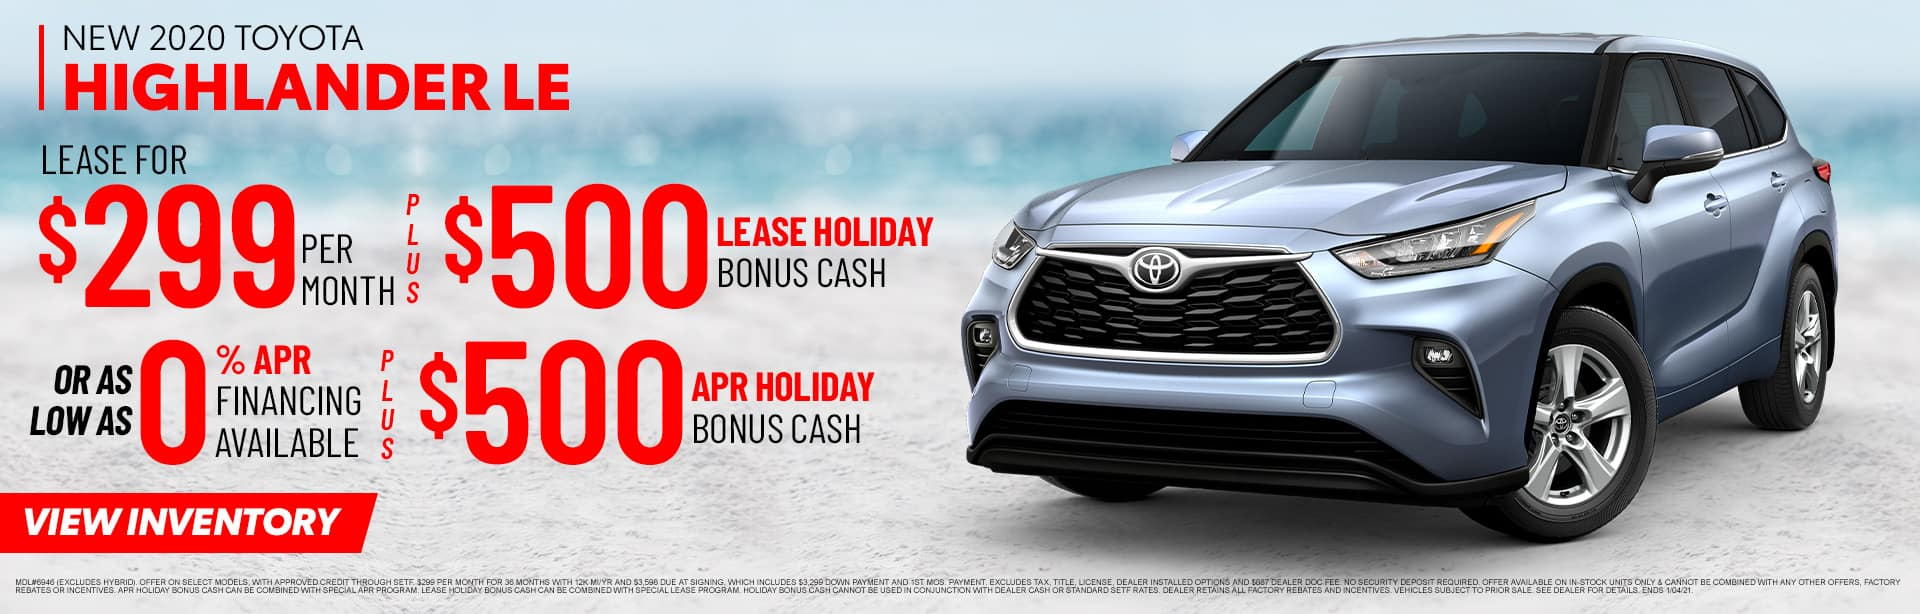 New 2020 Toyota Highlander LE | Sales NOW at Toyota of Fort Walton Beach